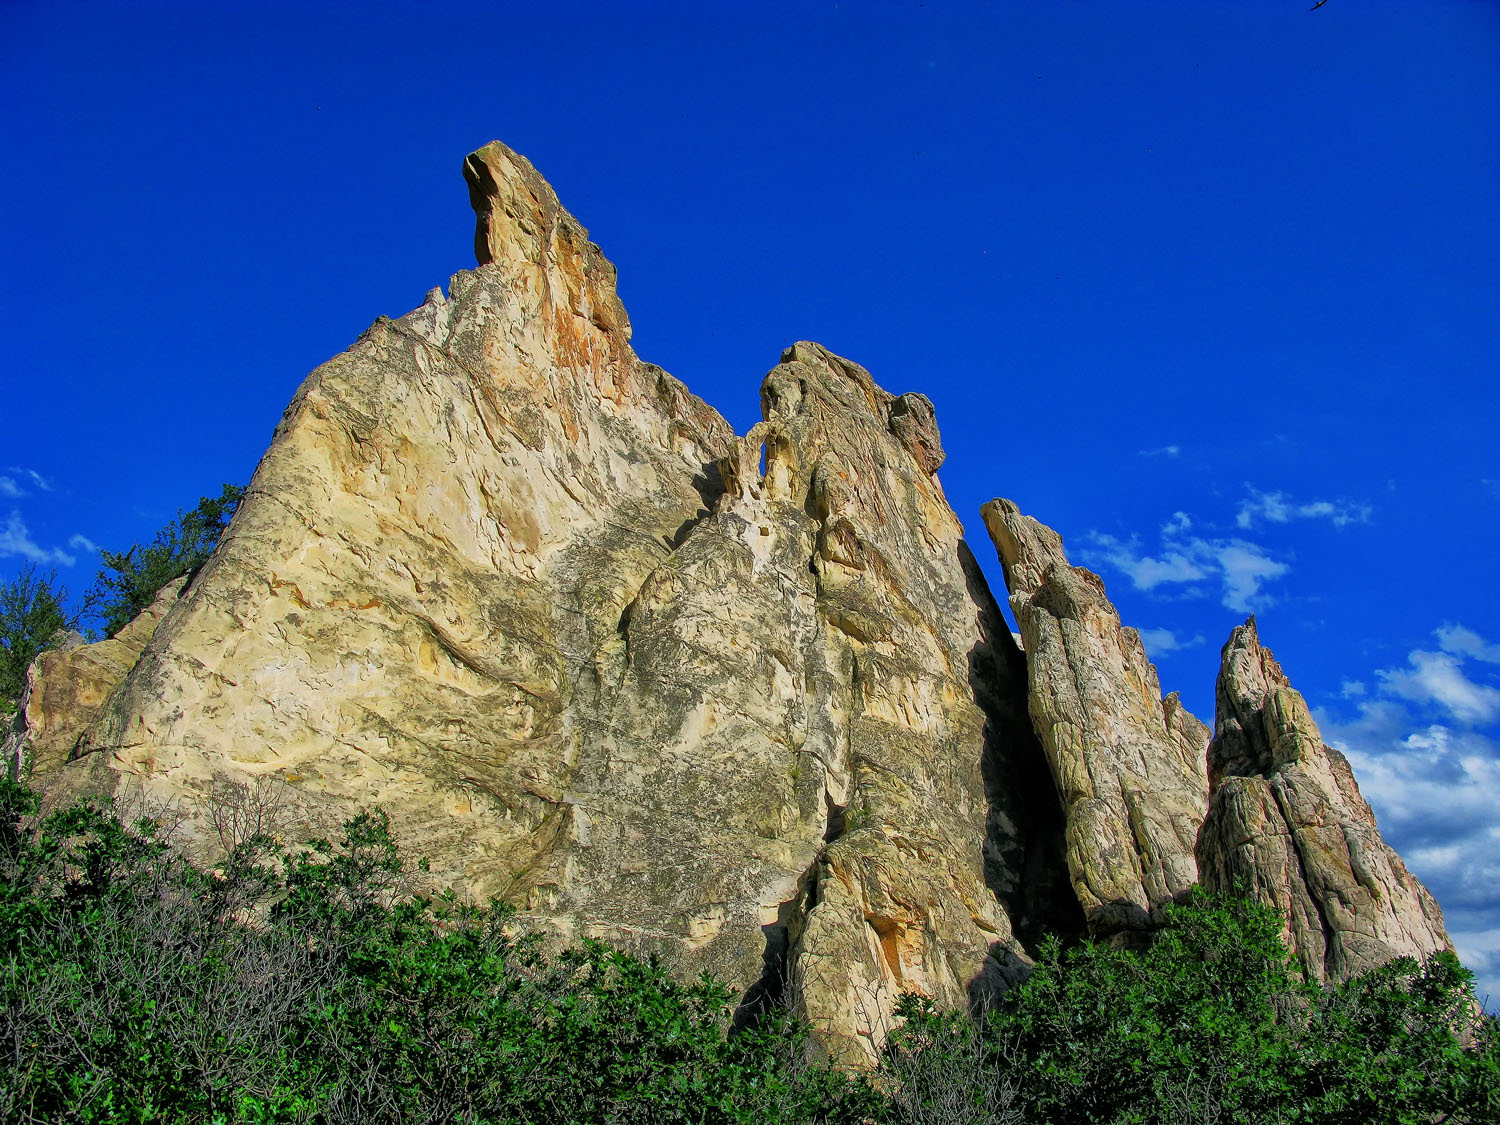 colarado, colarado springs, cathedral rock,, photo